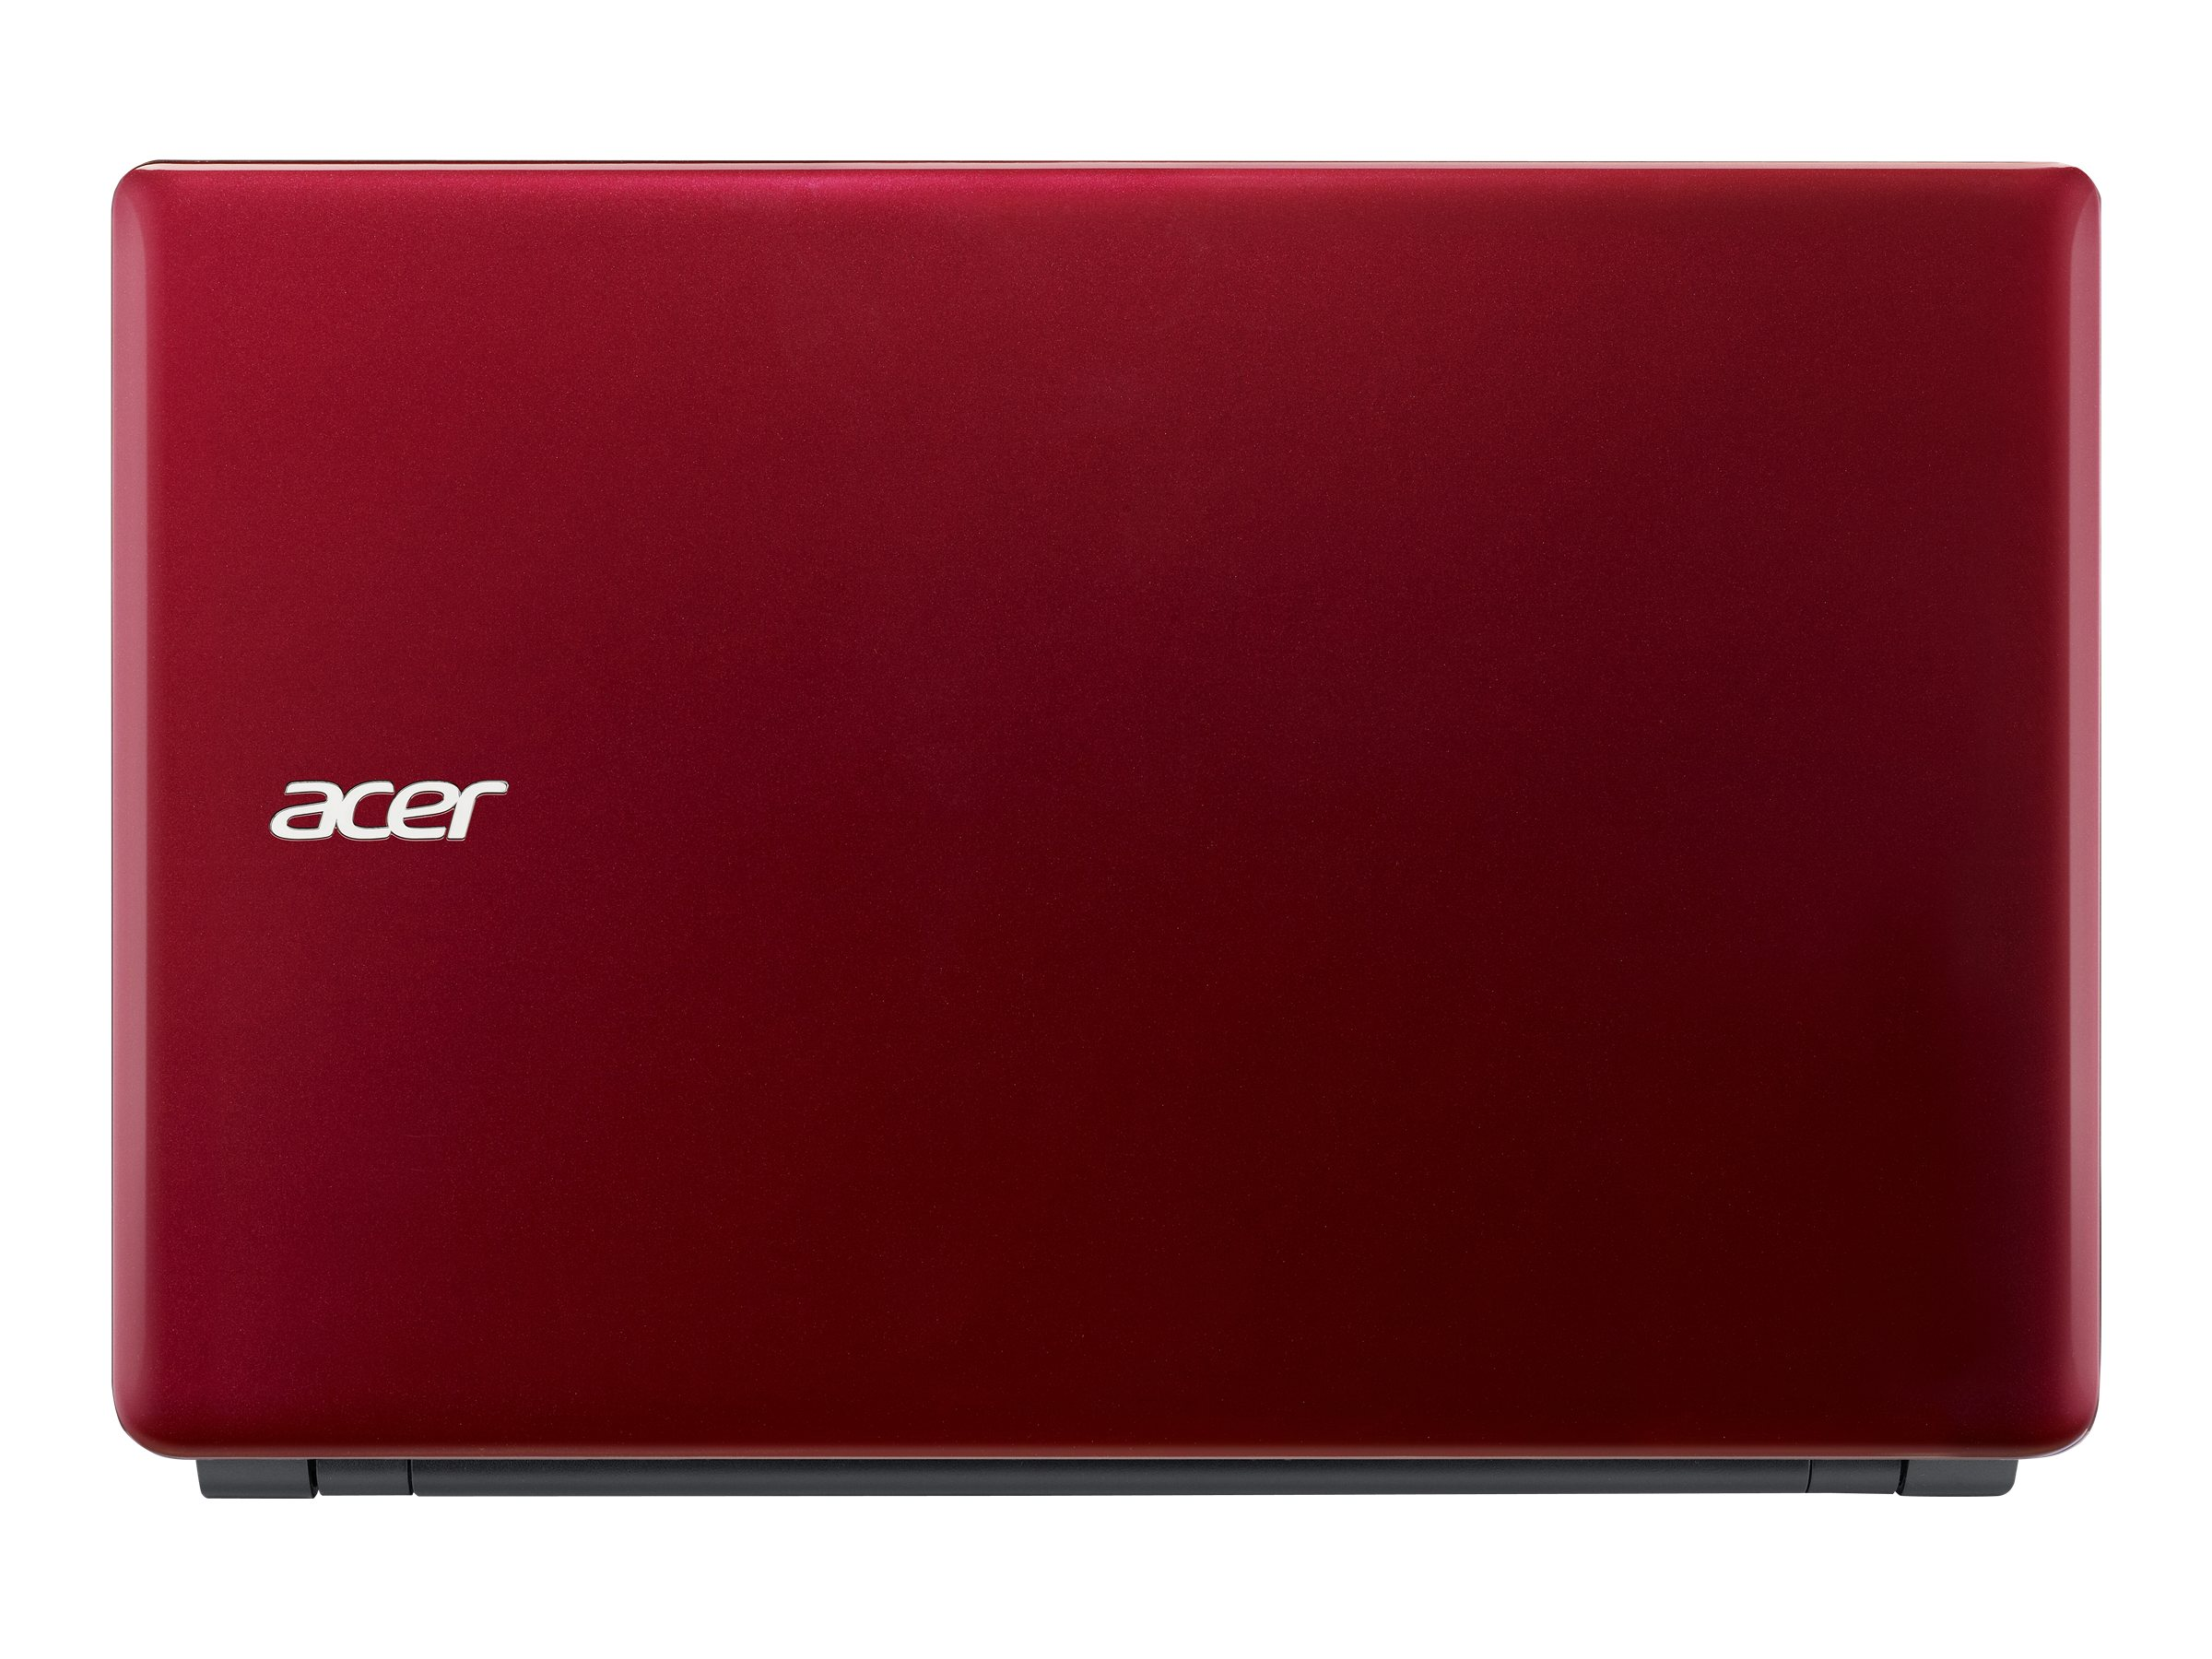 Acer Aspire E1-572-6660 : 1.6GHz Core i5 15.6in display, NX.MHFAA.004